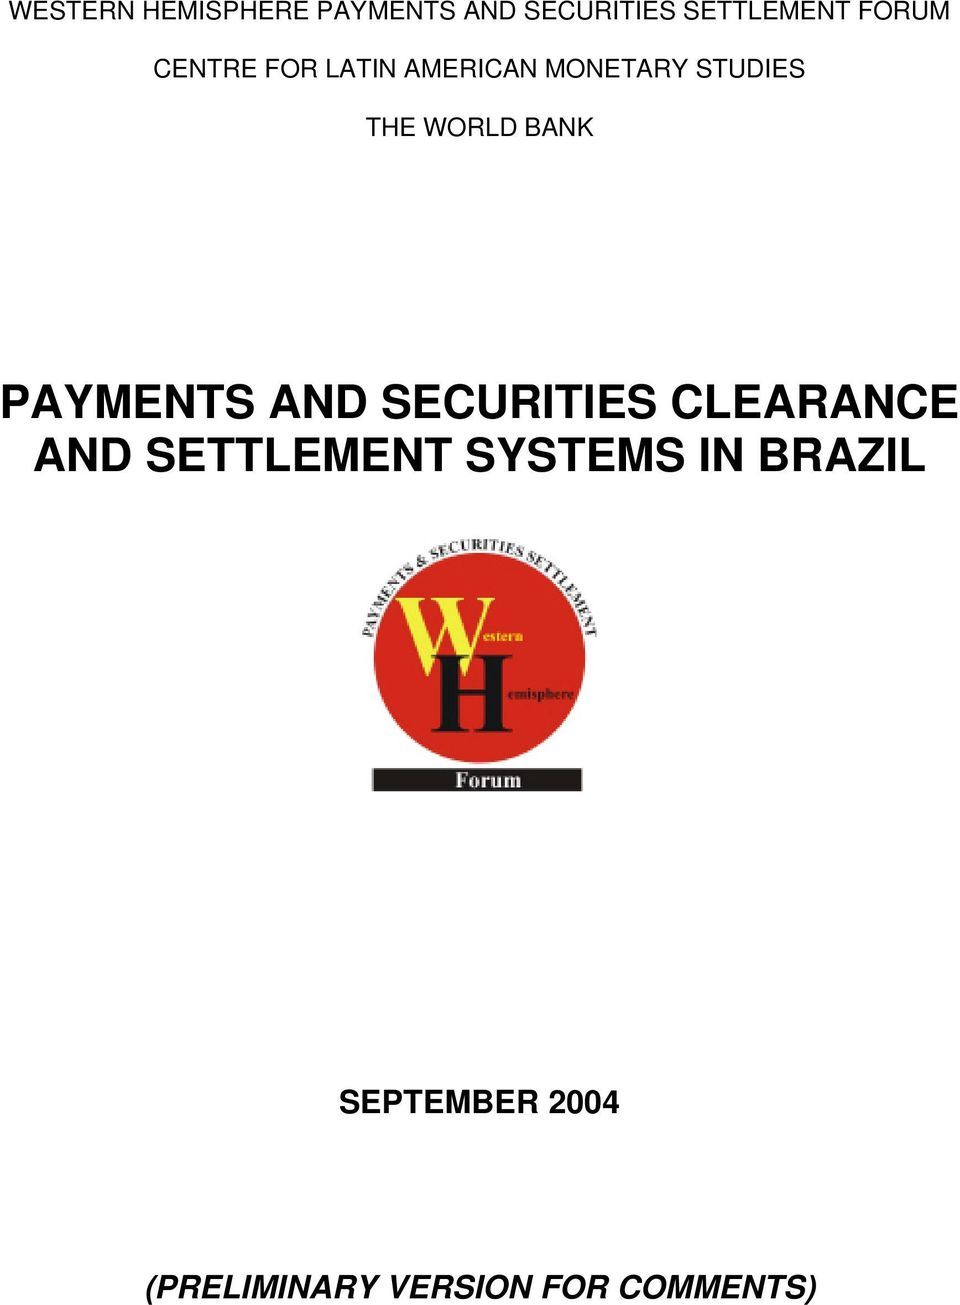 BANK PAYMENTS AND SECURITIES CLEARANCE AND SETTLEMENT